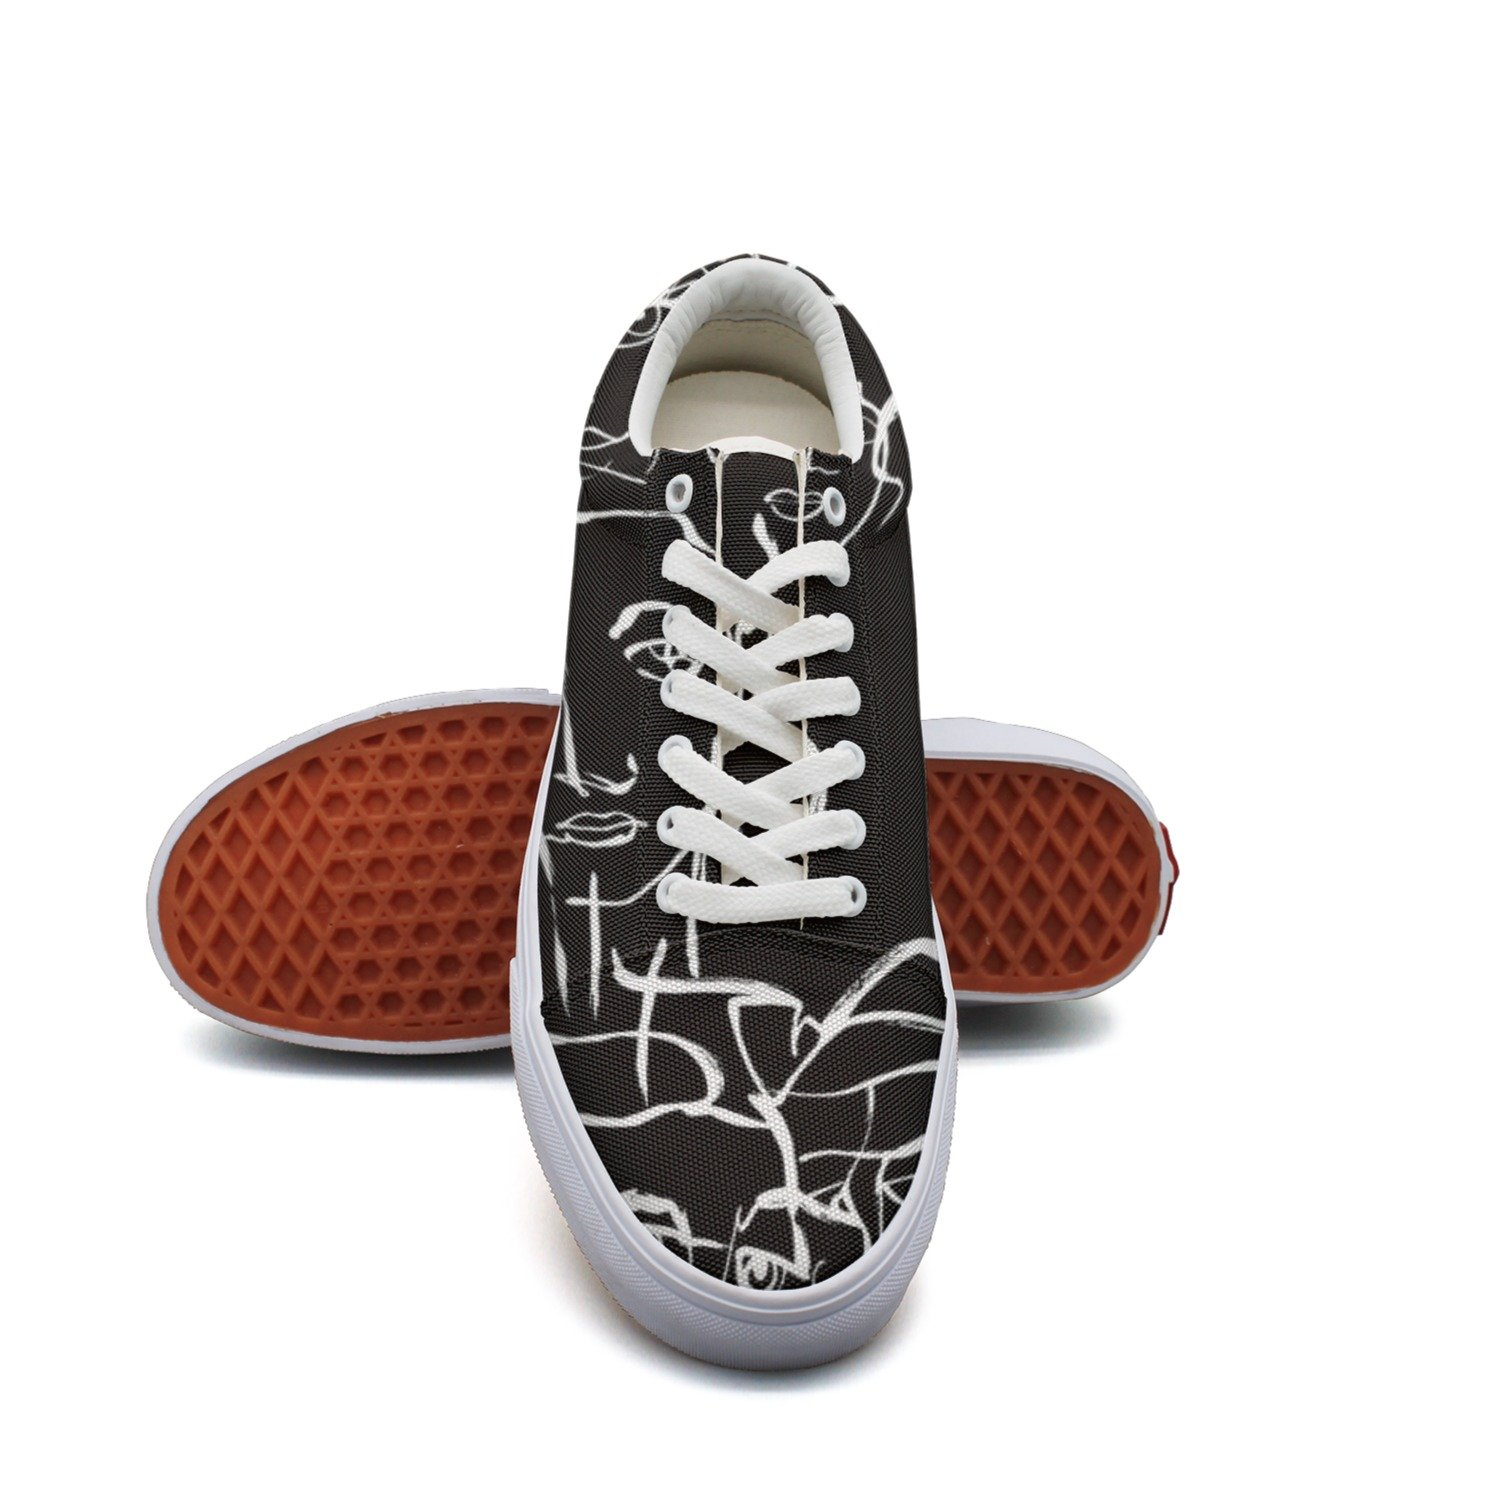 Ouxioaz Womens Laced Shoe Abstract Expression Black Sports Shoe Laces